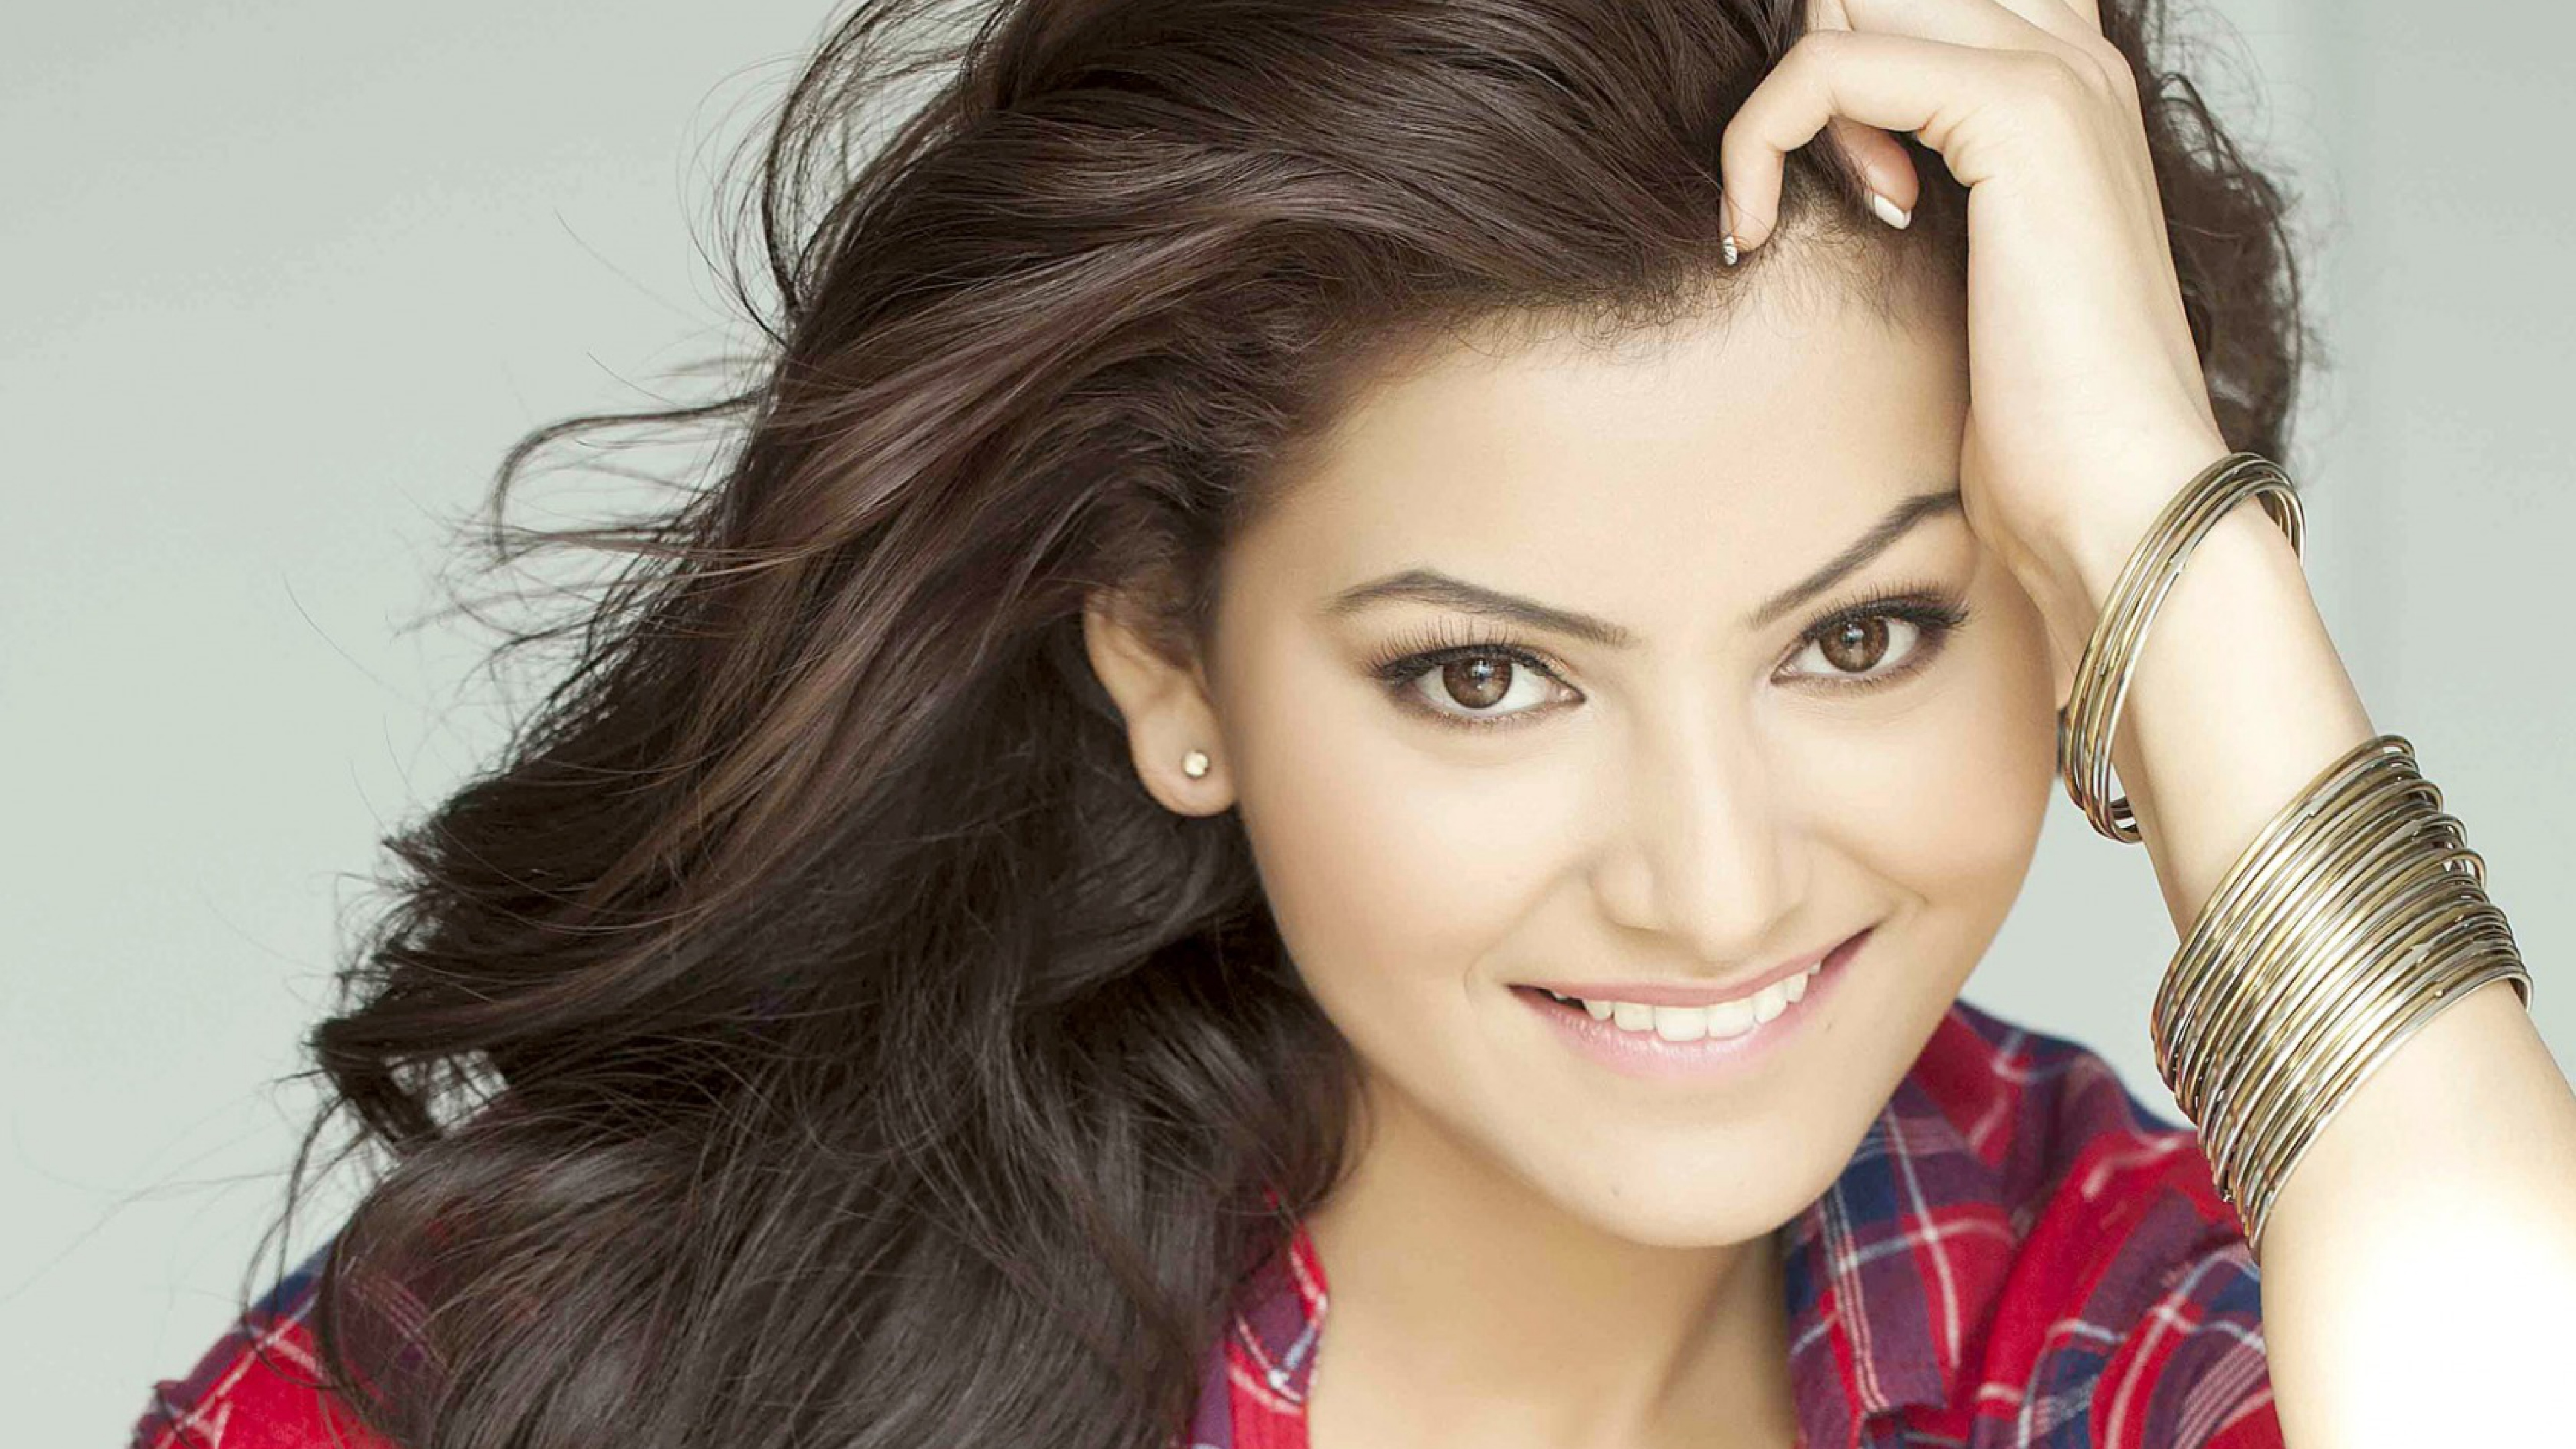 urvashi rautela wallpaper 4k background